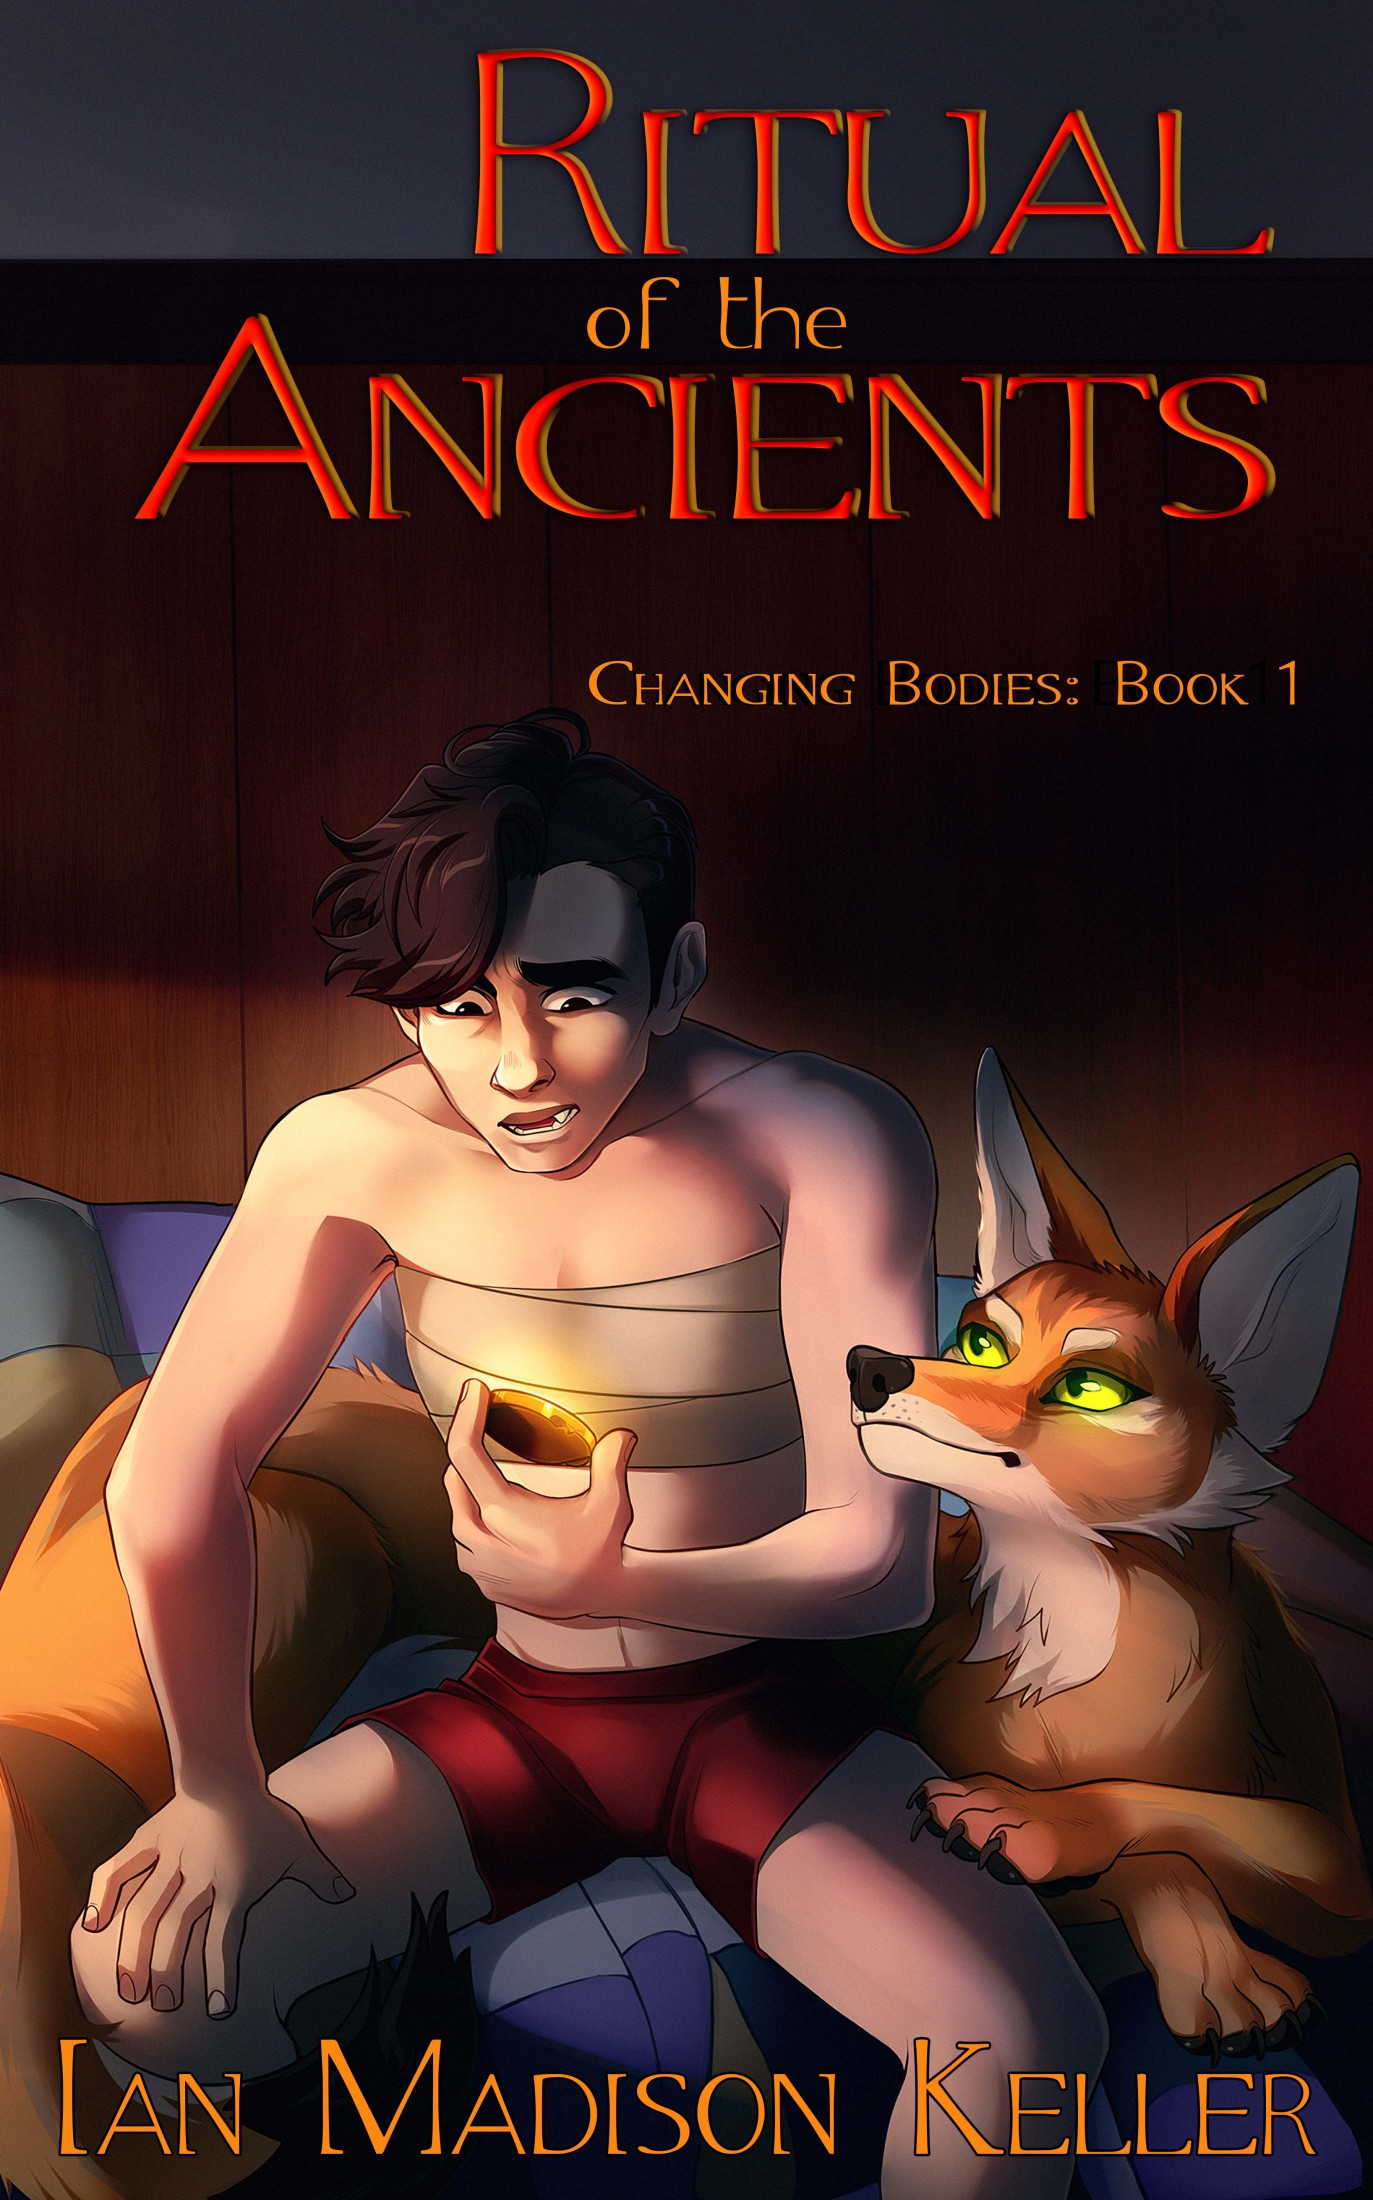 Ritual of the Ancients (Changing Bodies: Book 1)